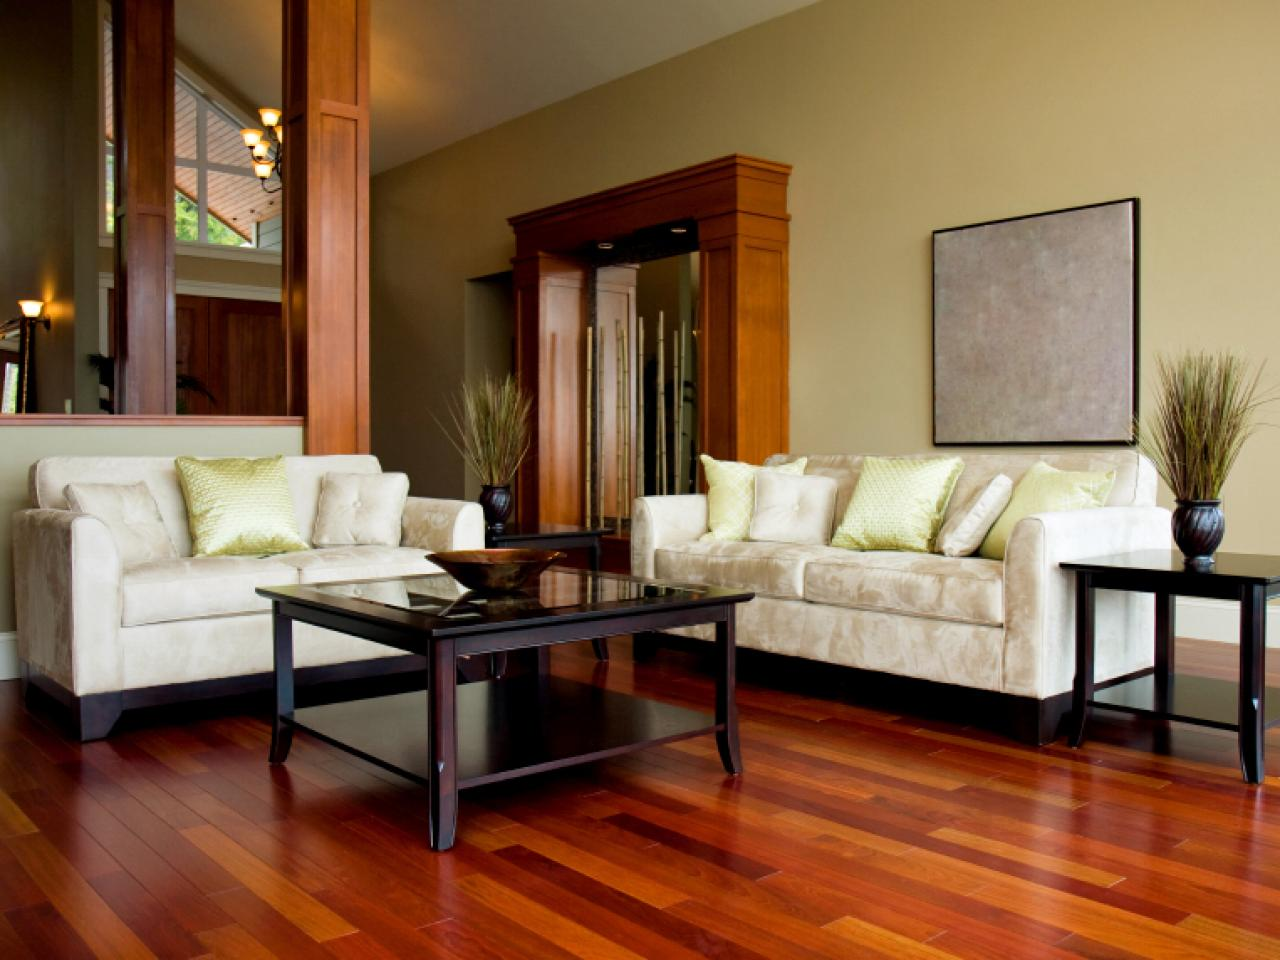 Guide to selecting flooring diy for Small room flooring ideas